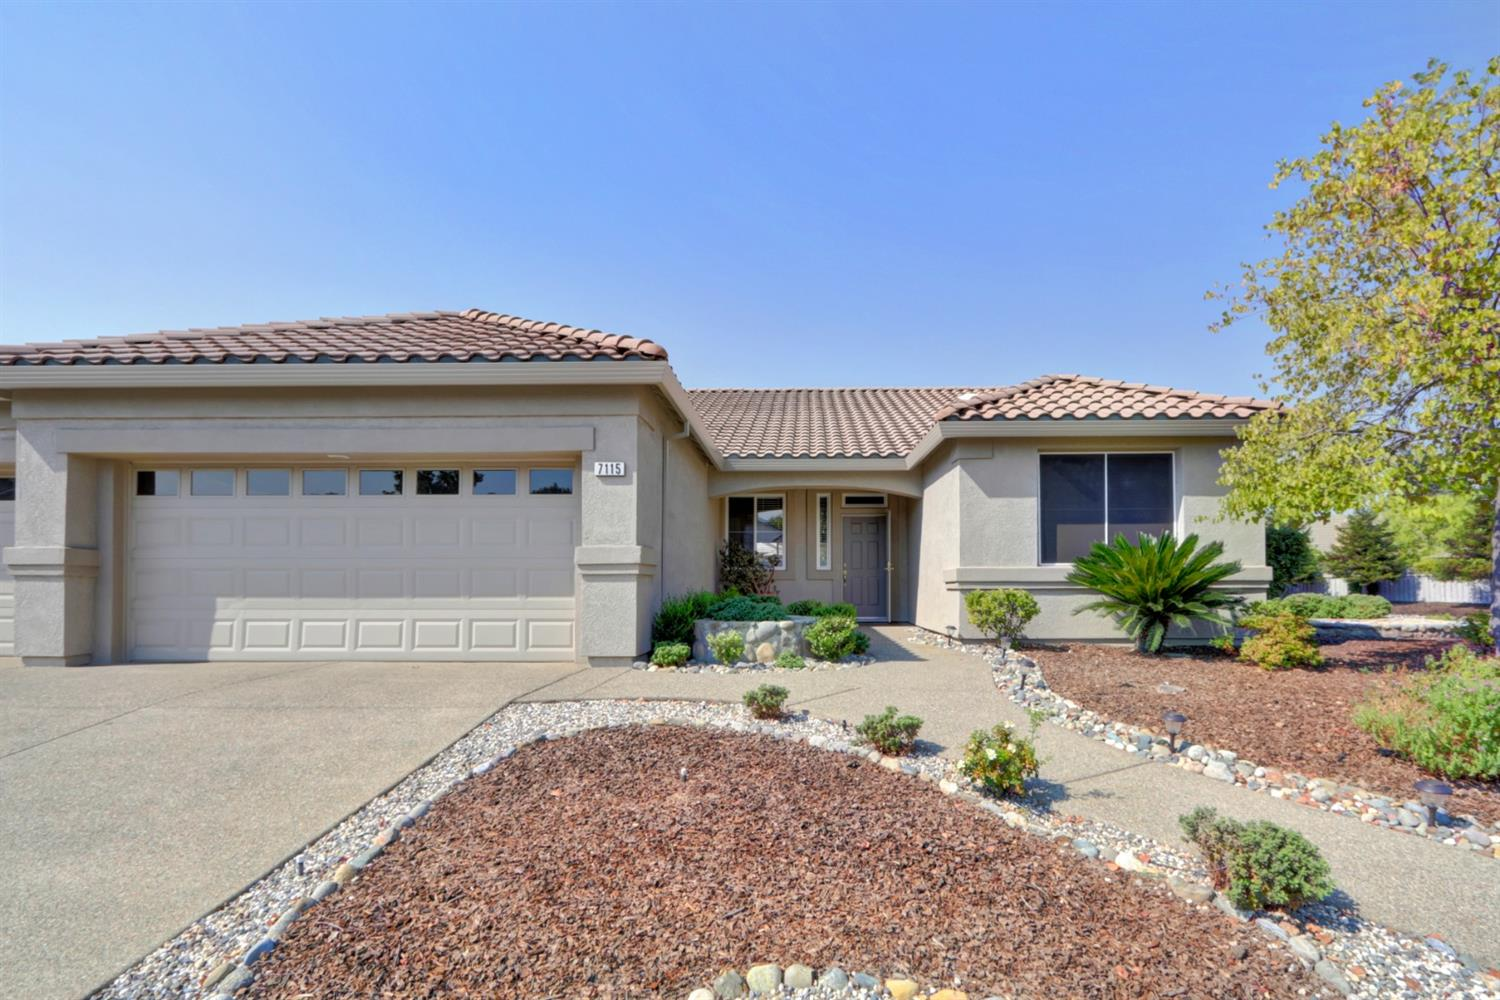 Photo 3 for Listing #221117540